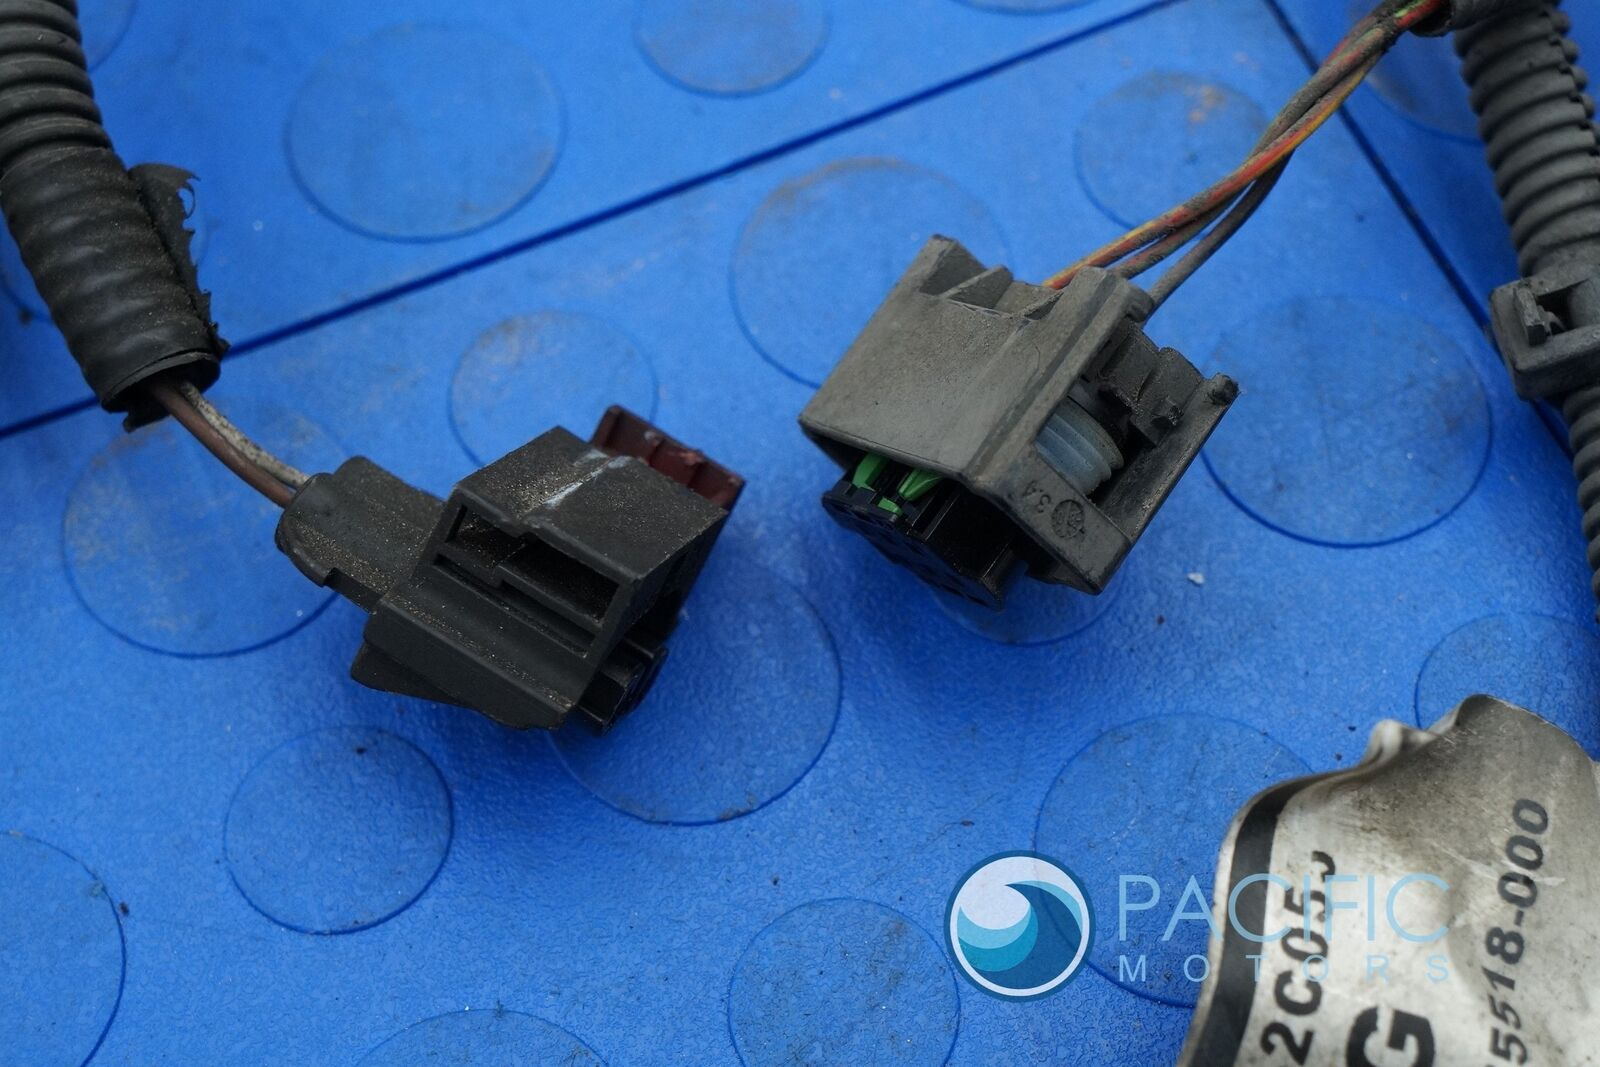 Rear Axle Differential ABS Wiring Wire Harness 6W839L468BC Jaguar XK A Wiring Harness on radio harness, fall protection harness, swing harness, engine harness, nakamichi harness, battery harness, cable harness, obd0 to obd1 conversion harness, dog harness, alpine stereo harness, maxi-seal harness, electrical harness, oxygen sensor extension harness, safety harness, suspension harness, pet harness, pony harness, amp bypass harness,